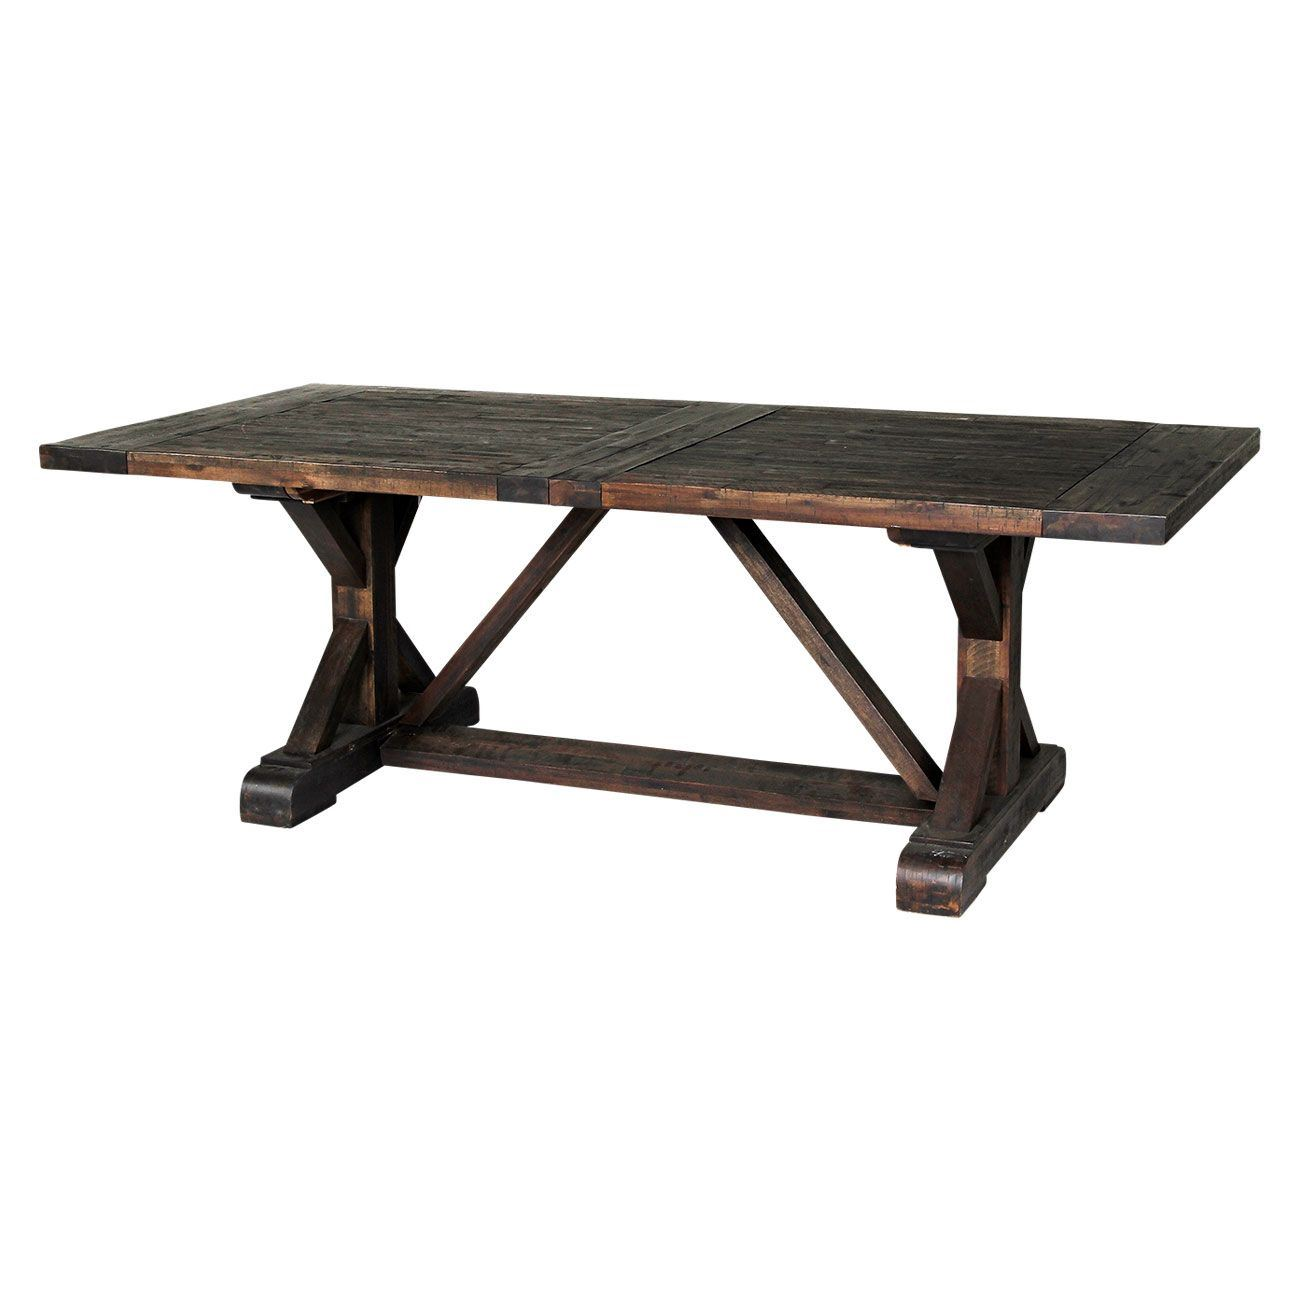 picture of cameron charcoal trestle table picture of cameron charcoal trestle  table GLBRRXH